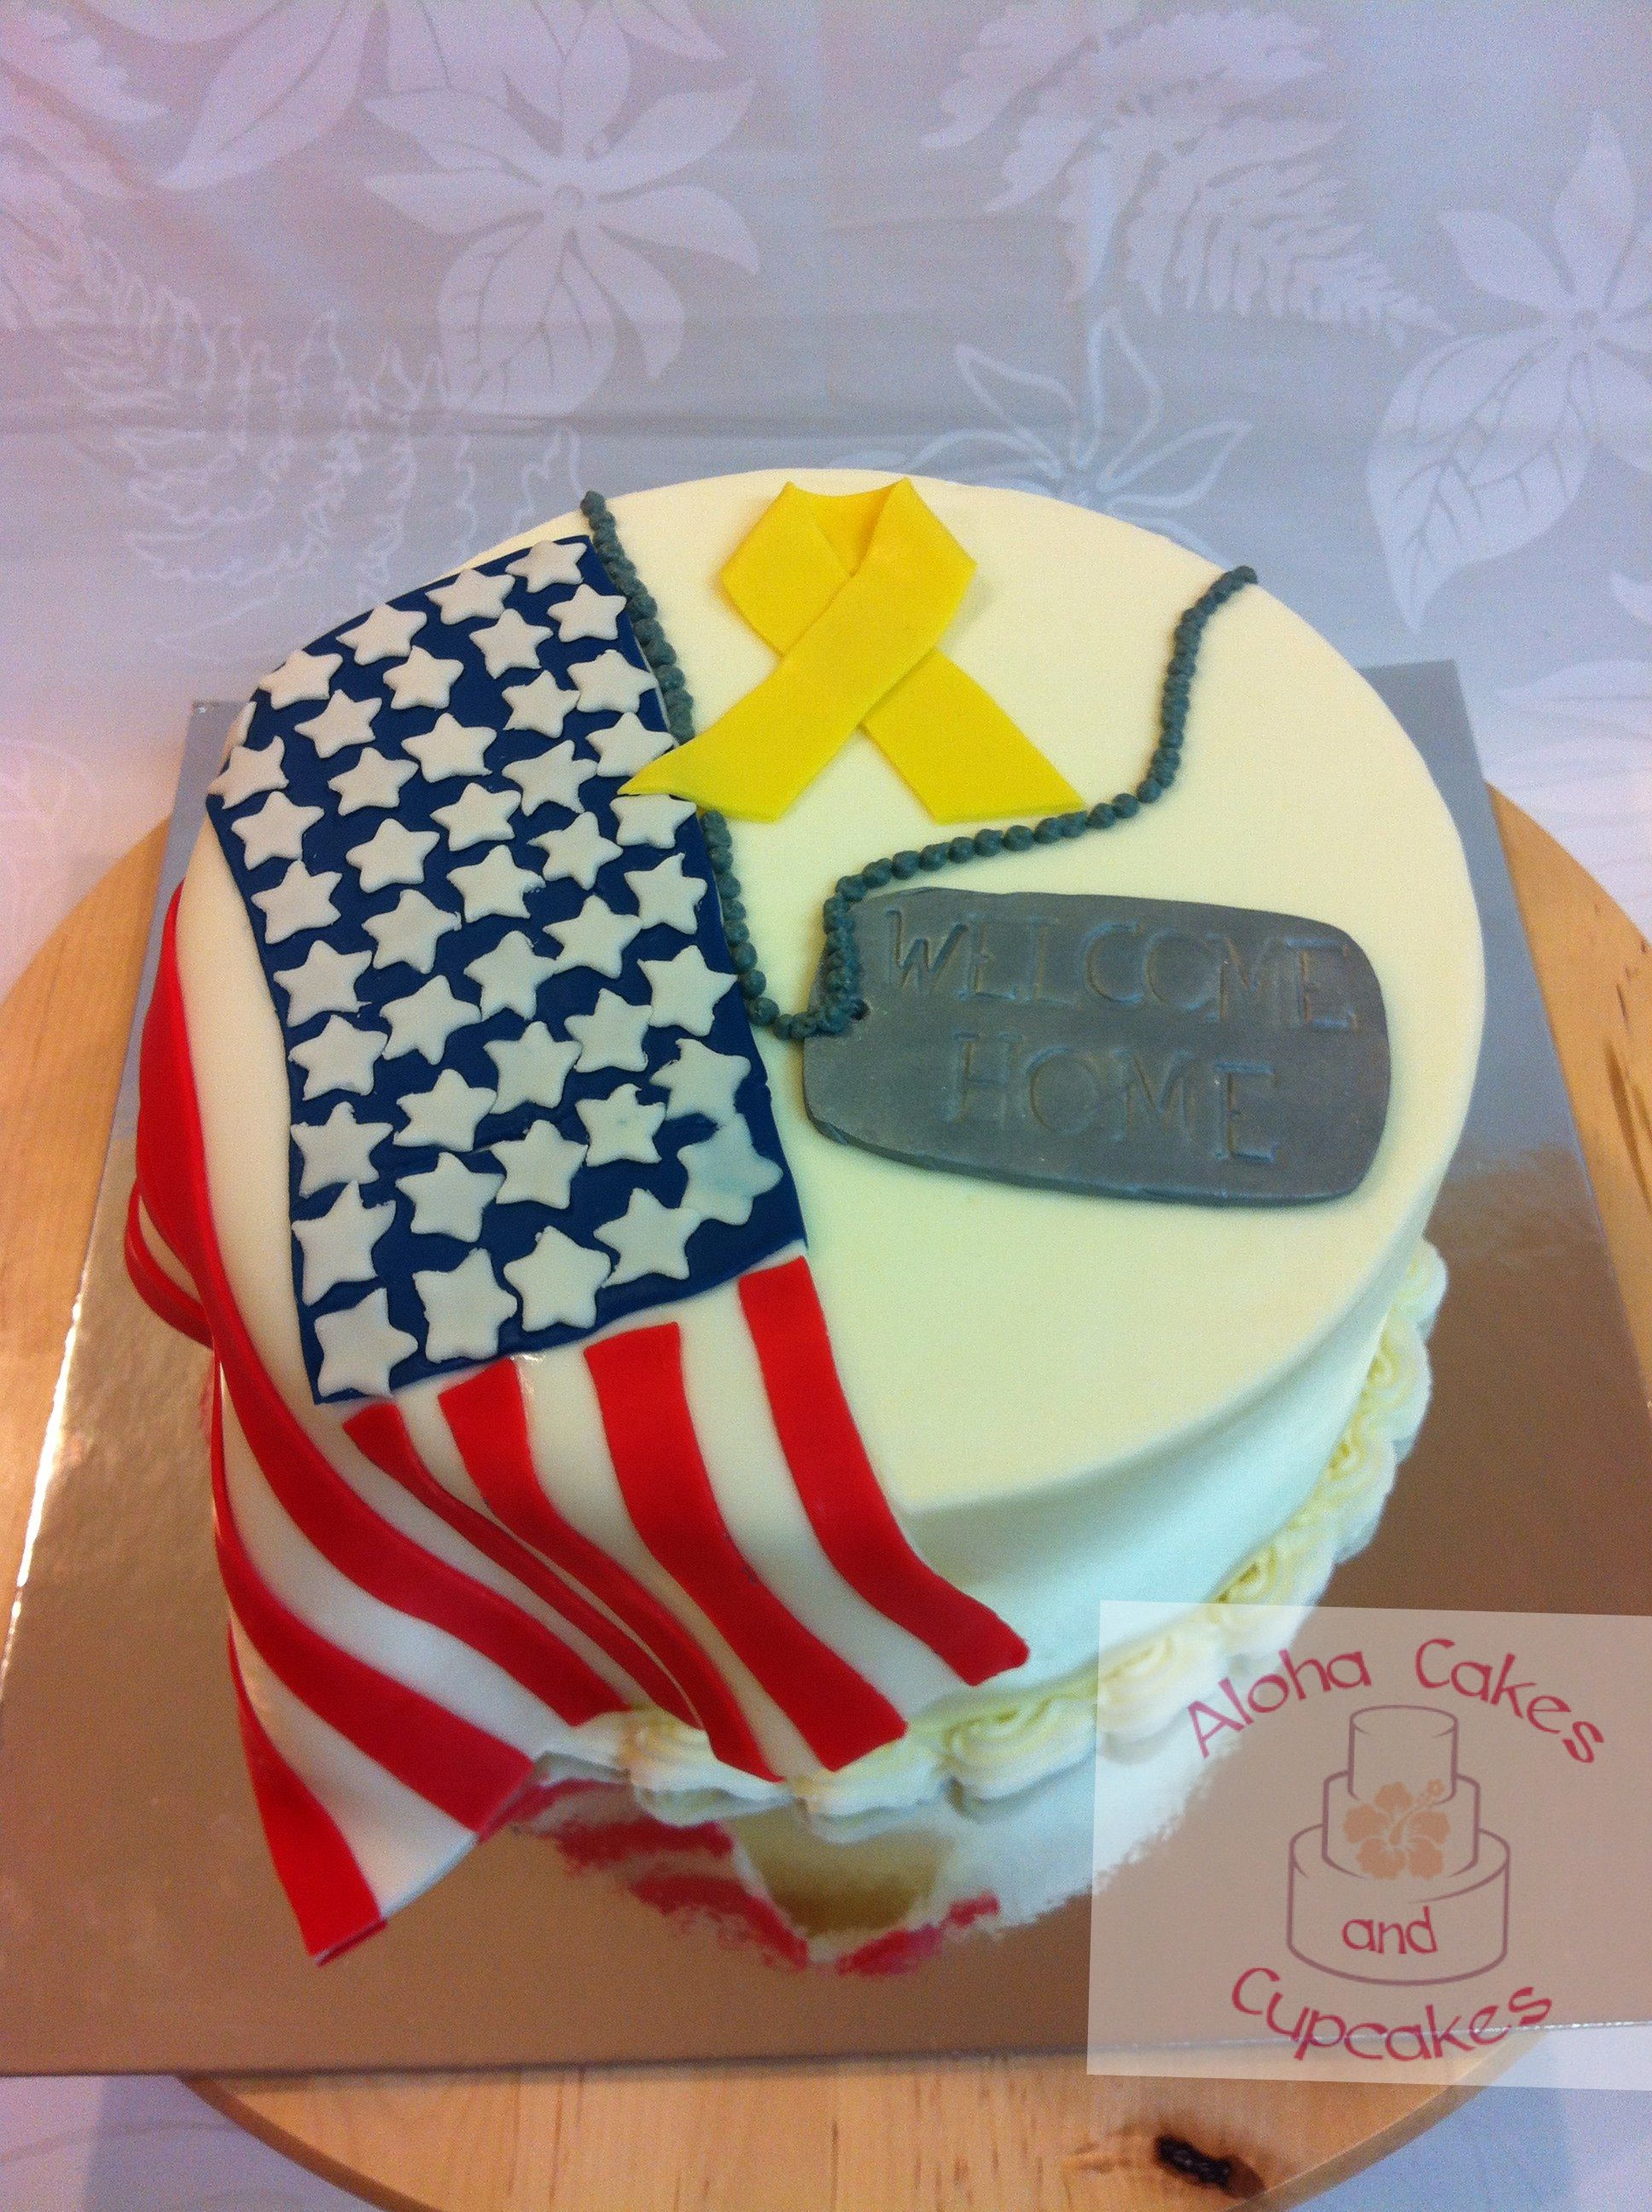 Welcome home military cake ideas 52013 welcome home cake c for Welcome home cake decorations